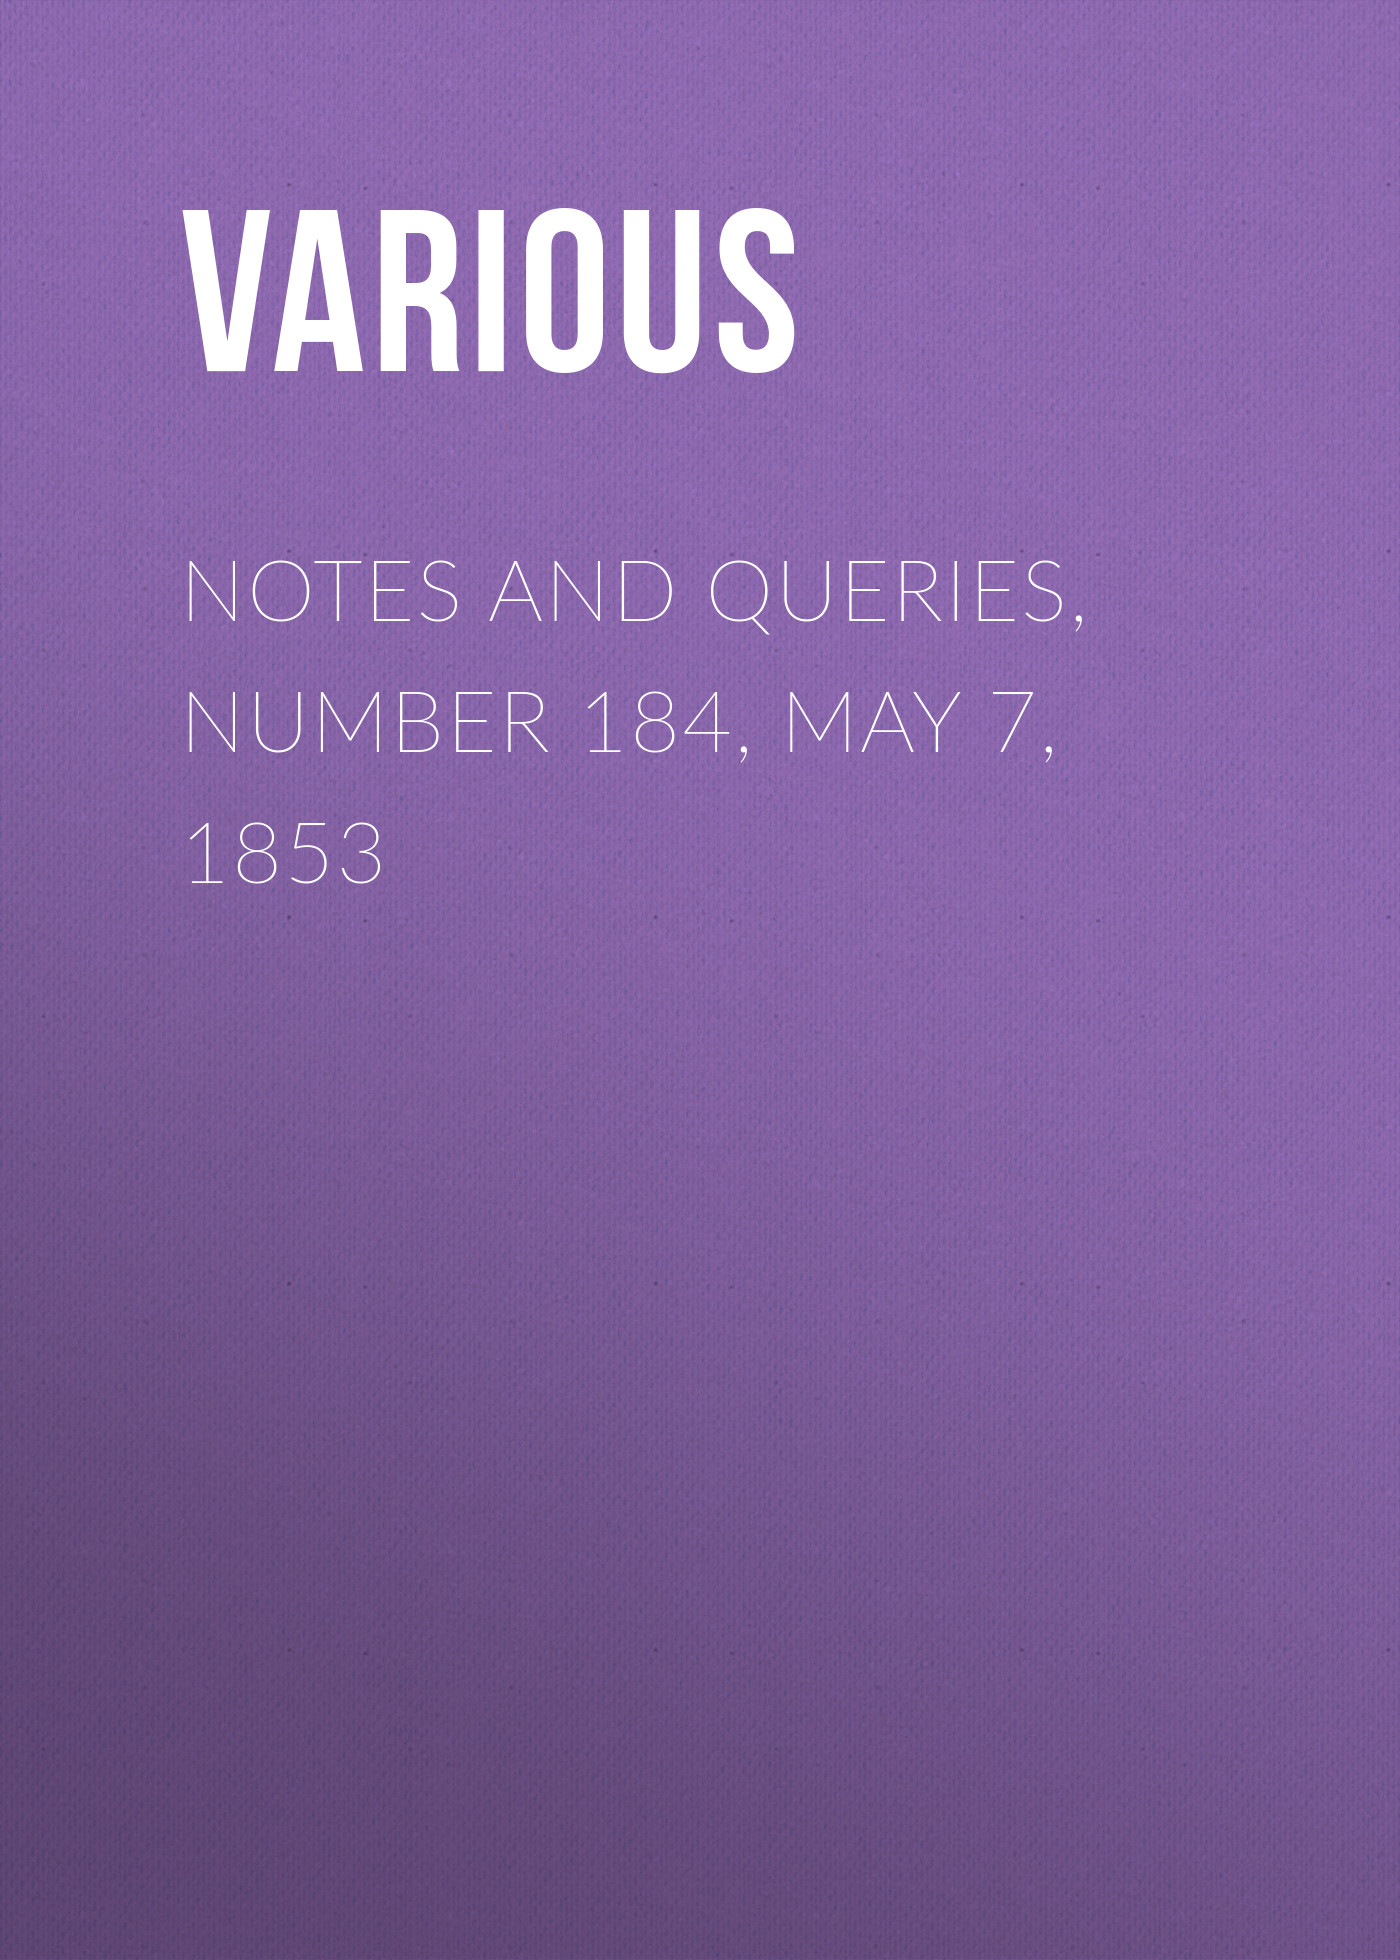 Various Notes and Queries, Number 184, May 7, 1853 jivago 7 notes